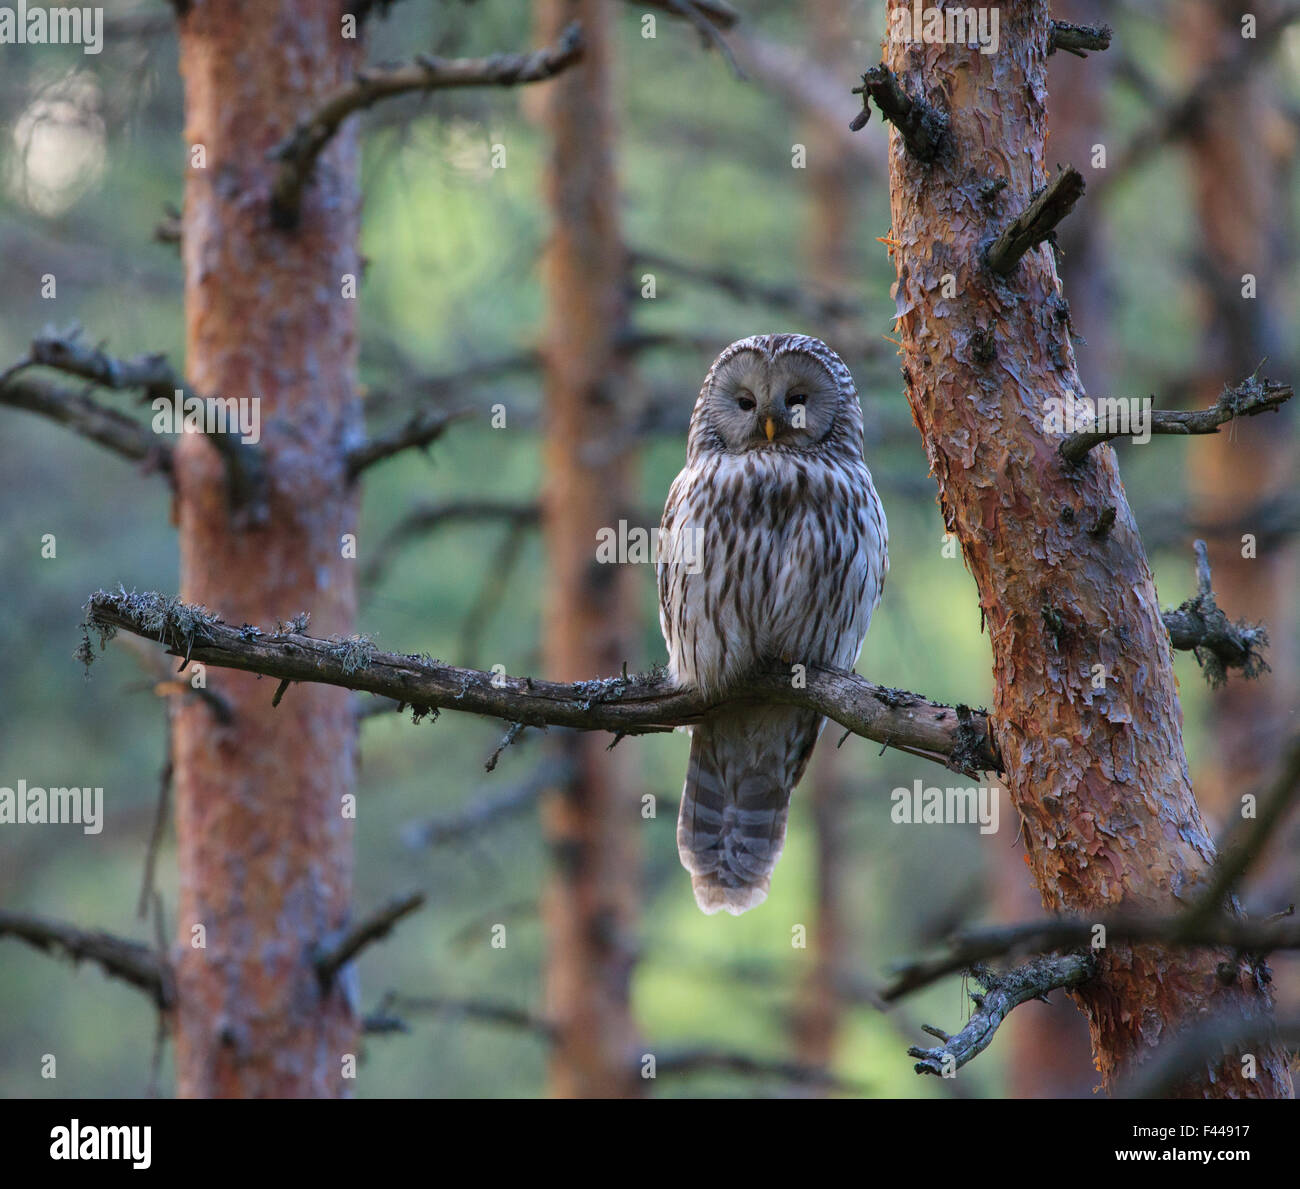 Female Ural Owl (Strix uralensis) perched on pine tree branch. Southern Estonia, May. - Stock Image